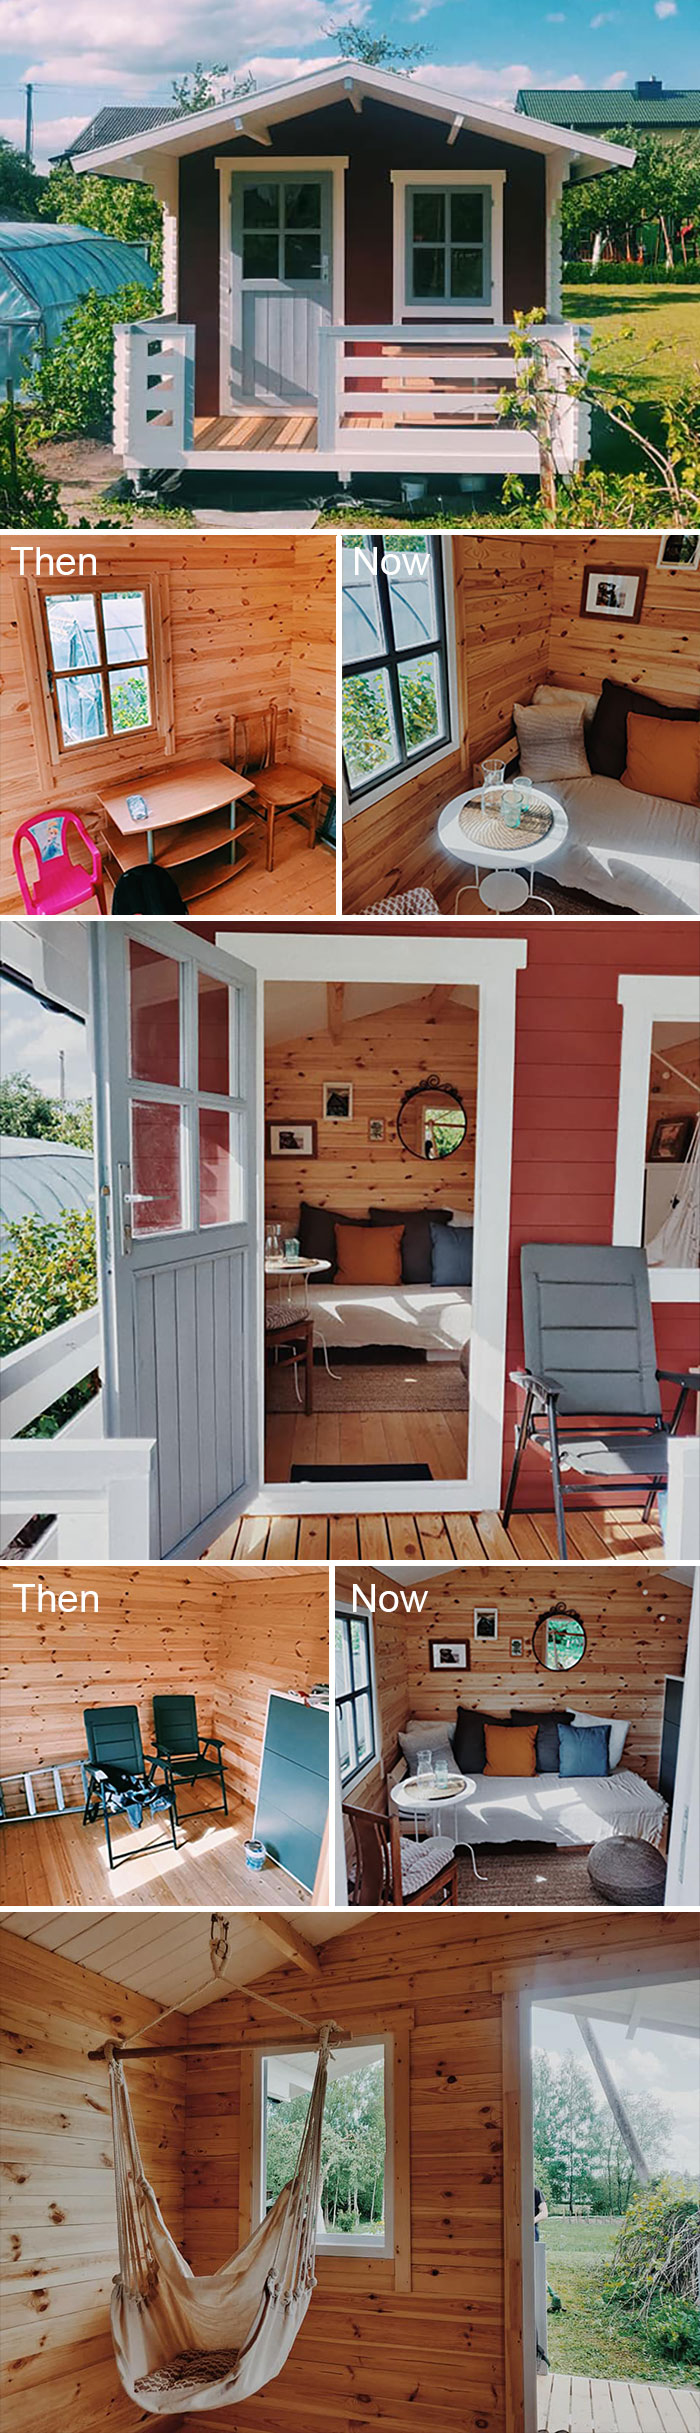 I Decorated My Mom's Garden Tiny House. She Loved It!